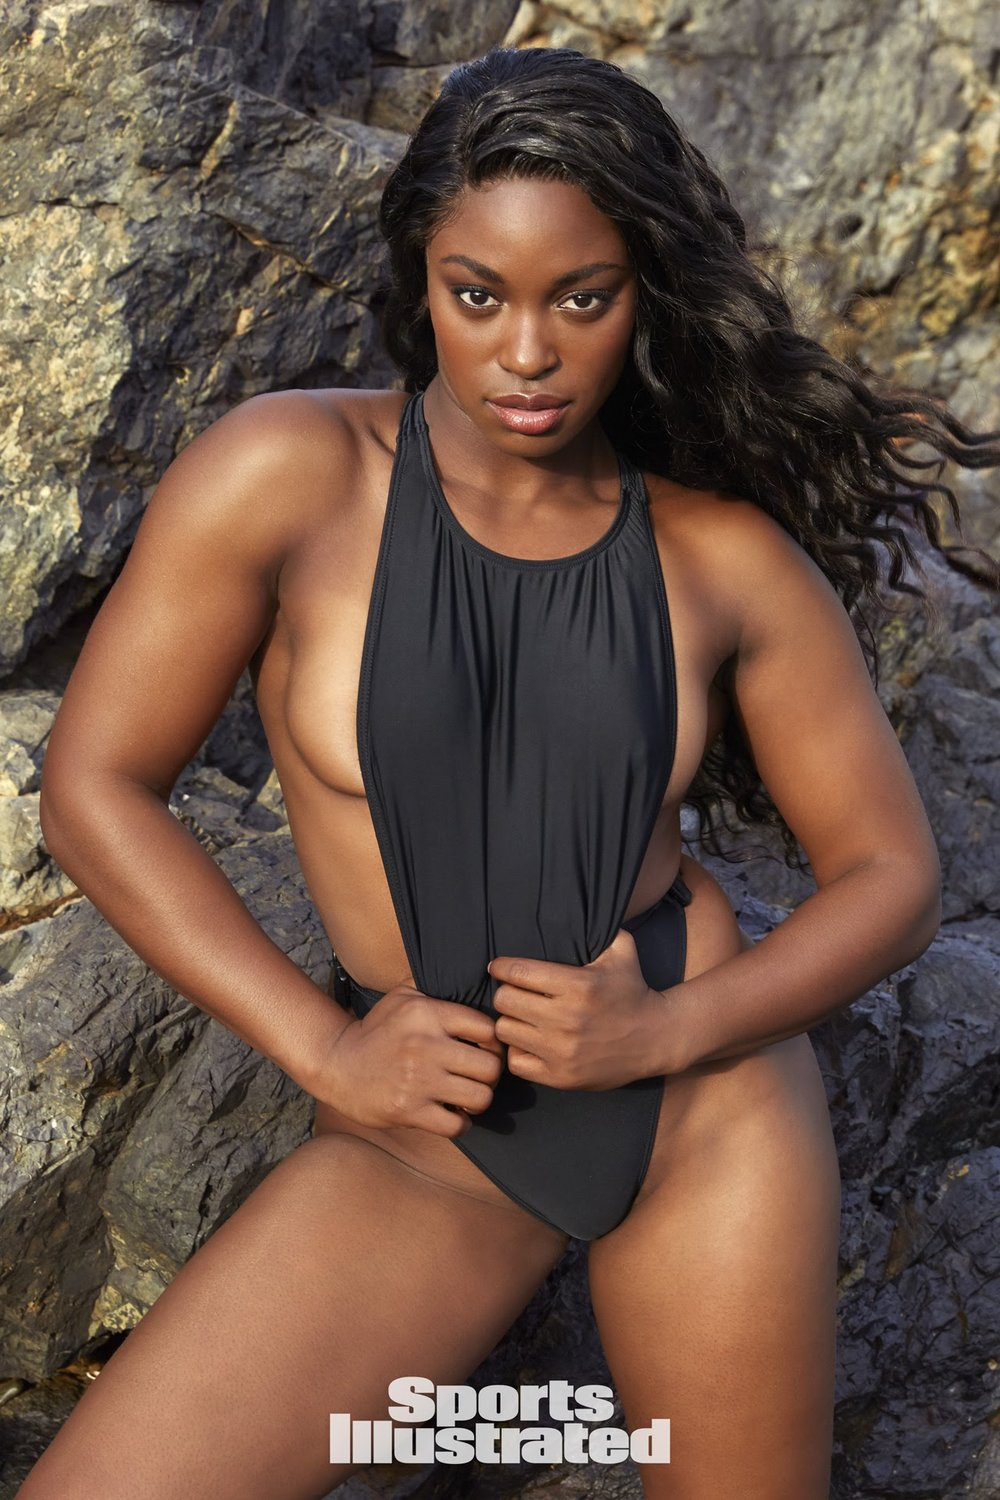 Sloane Stephens for Sports Illustrated Swimsuit Issue 2018